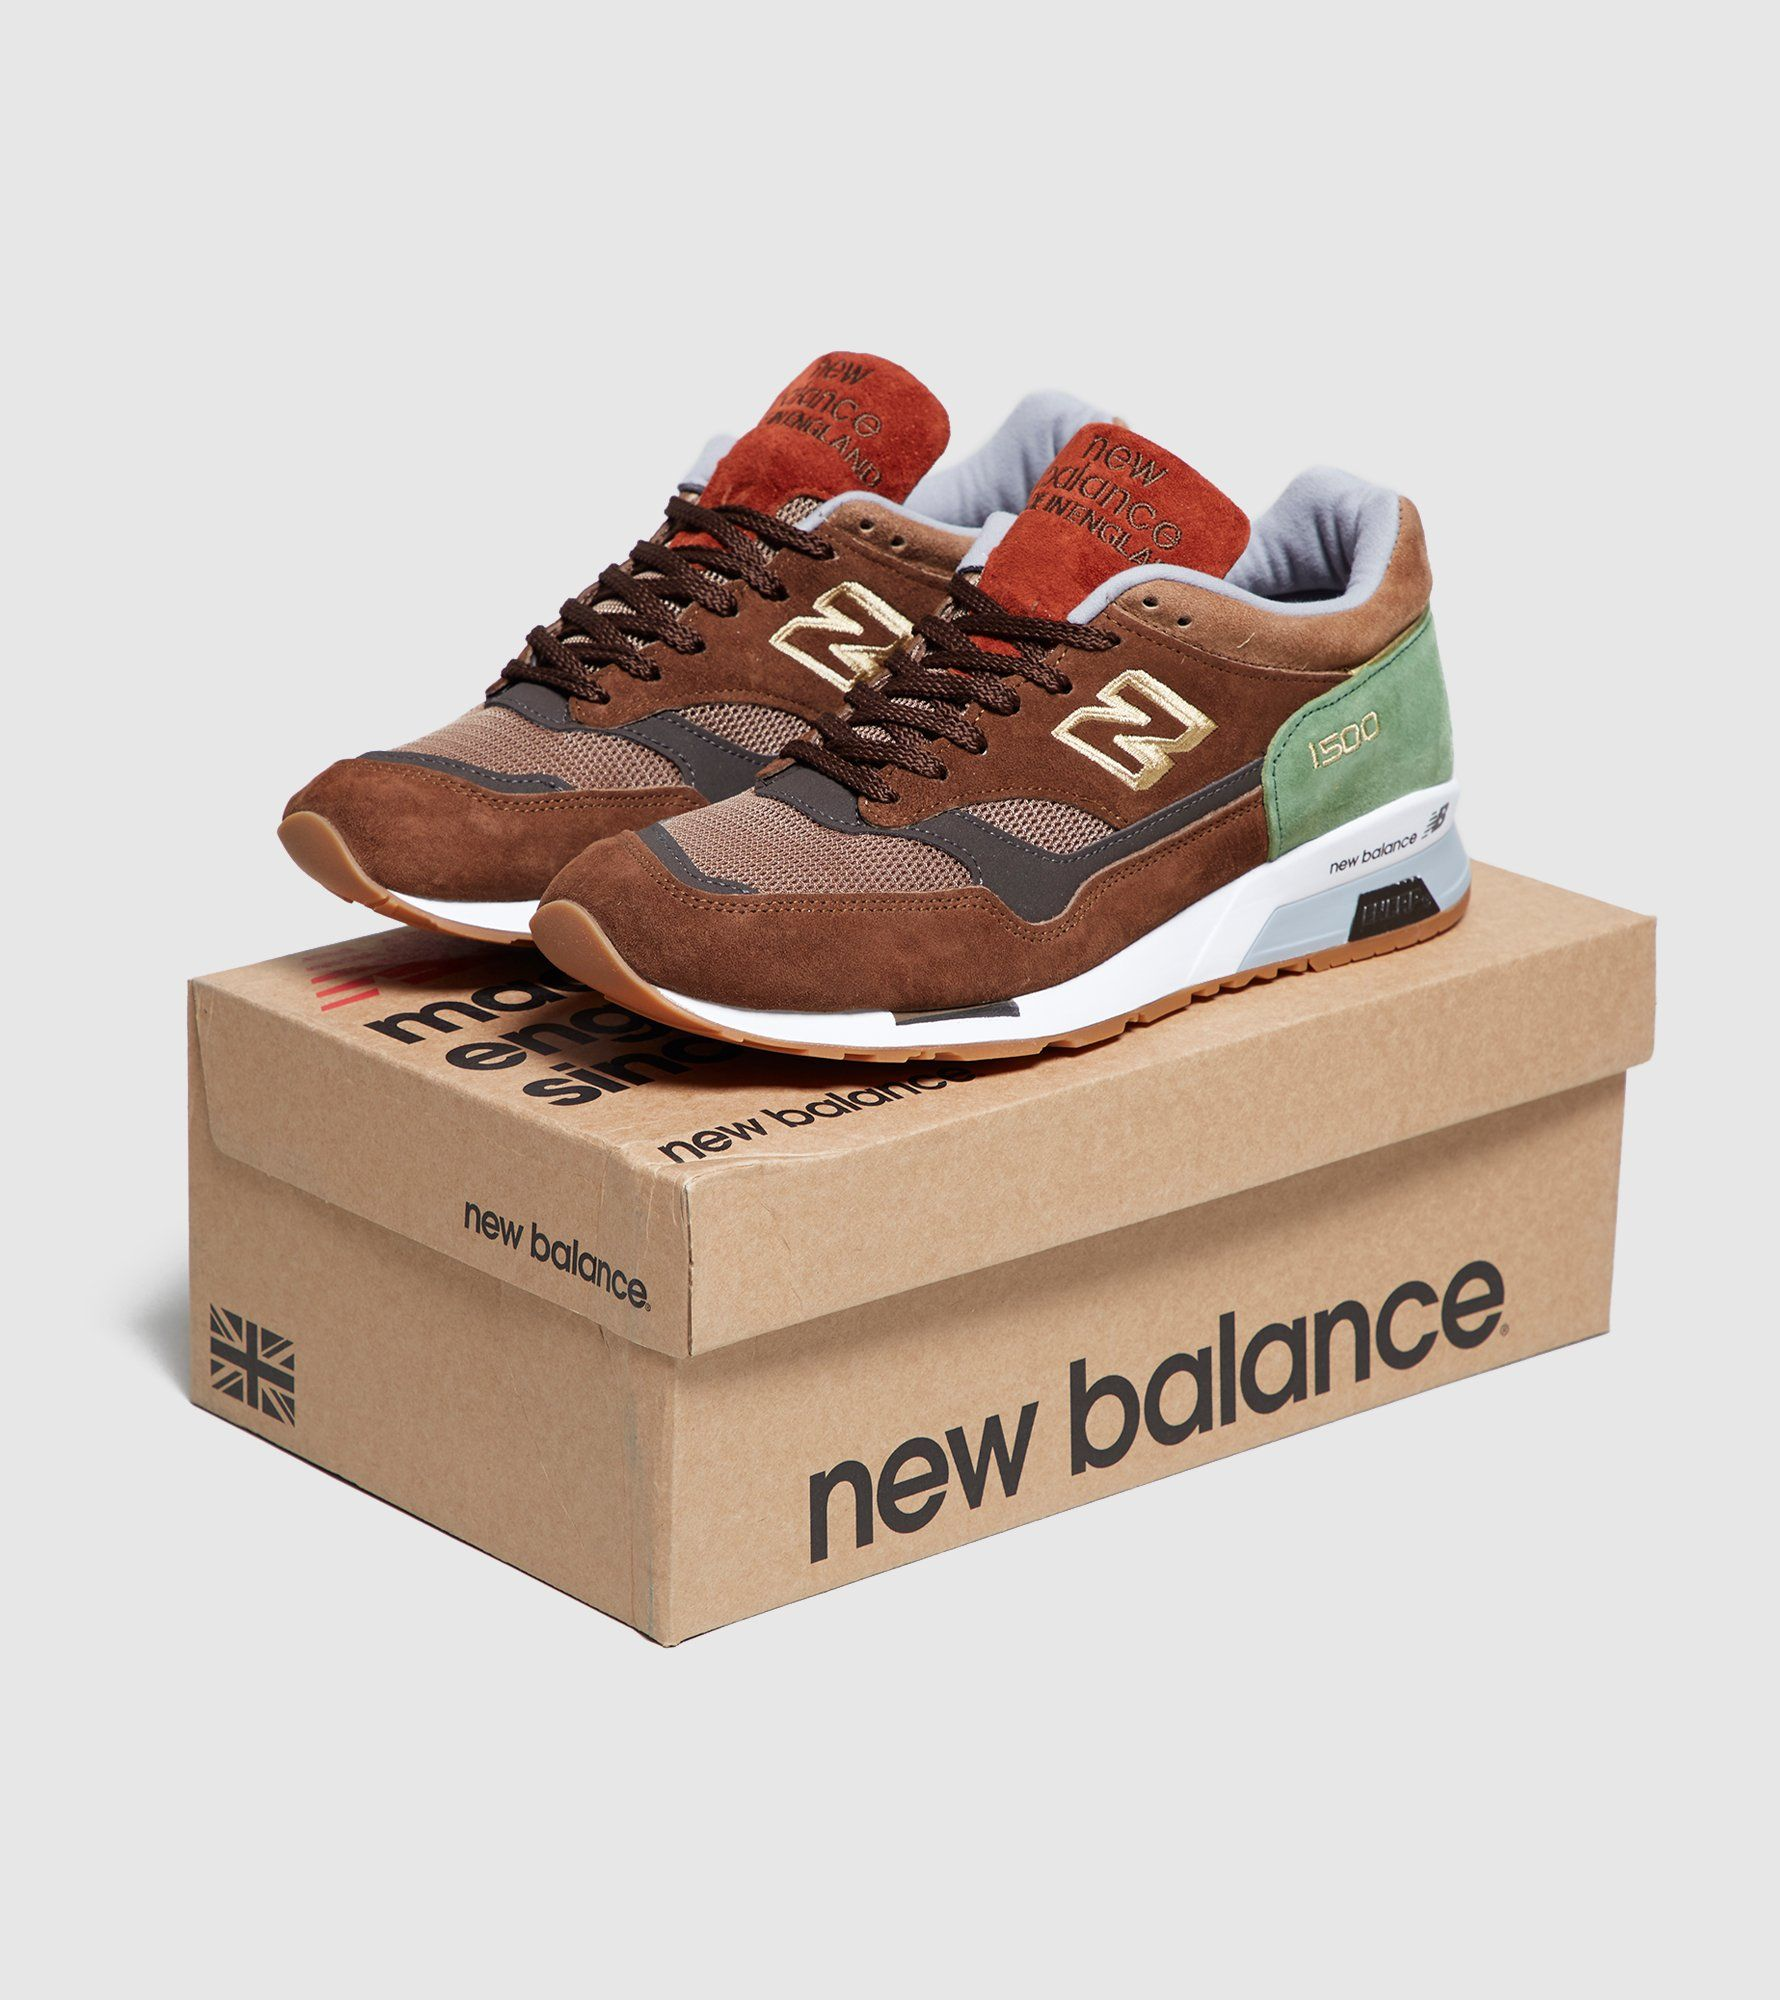 New Balance 1500 Made in the UK Coastal Cuisine